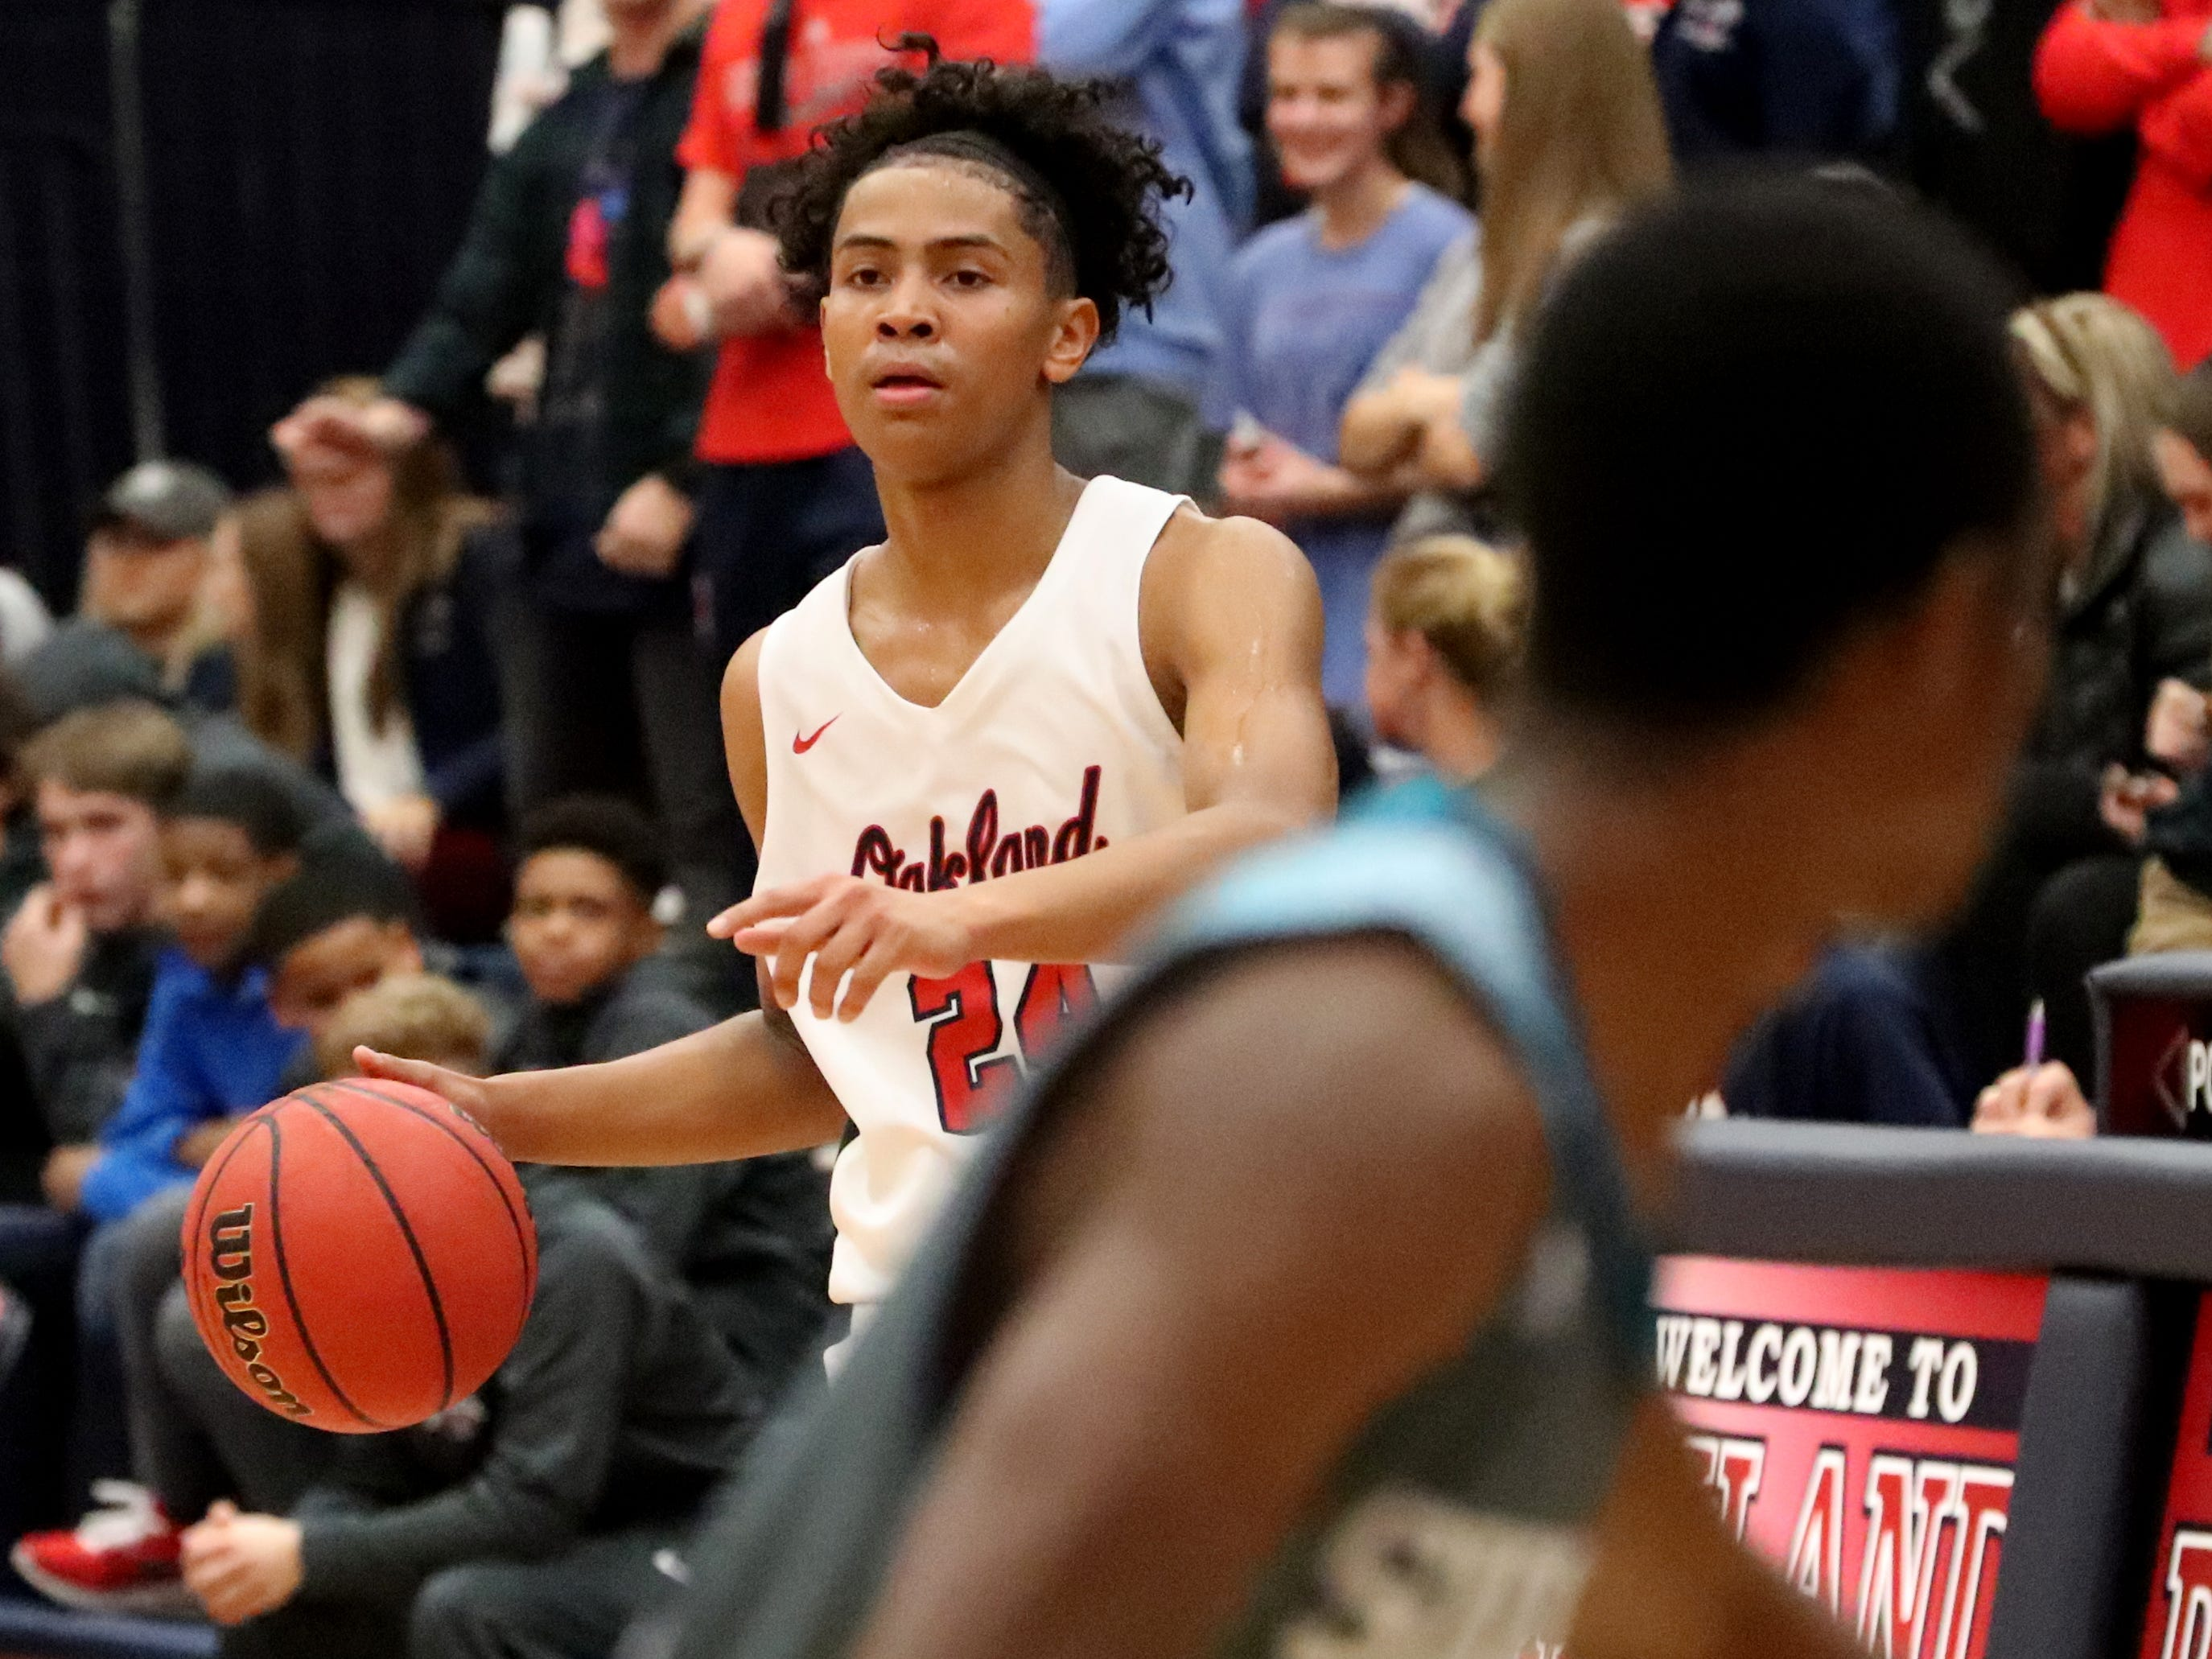 Oakland's Jaden Jamison (24) brings the ball down the court during the game against Oakland at Oakland on Tuesday, Dec.. 4, 2018.